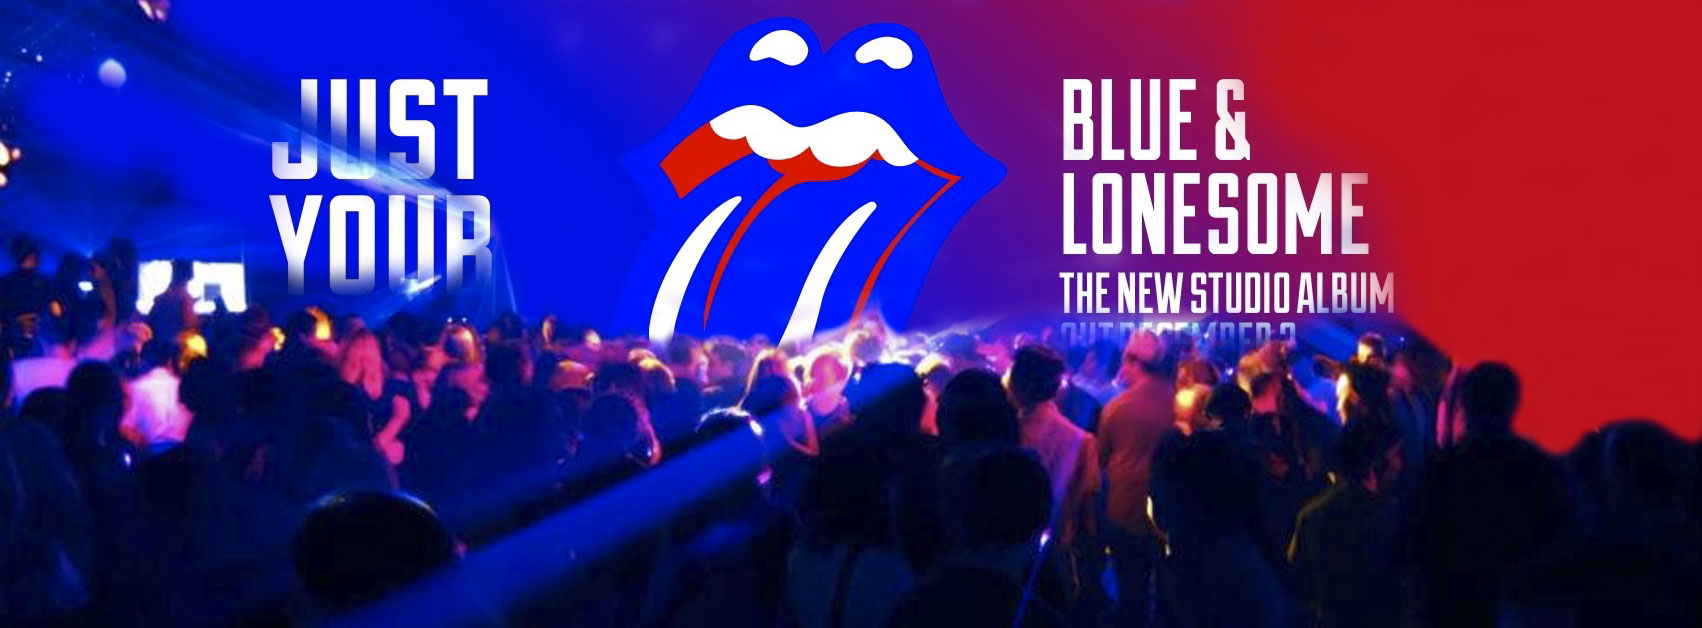 Rolling Stones, Blue & Lonesome